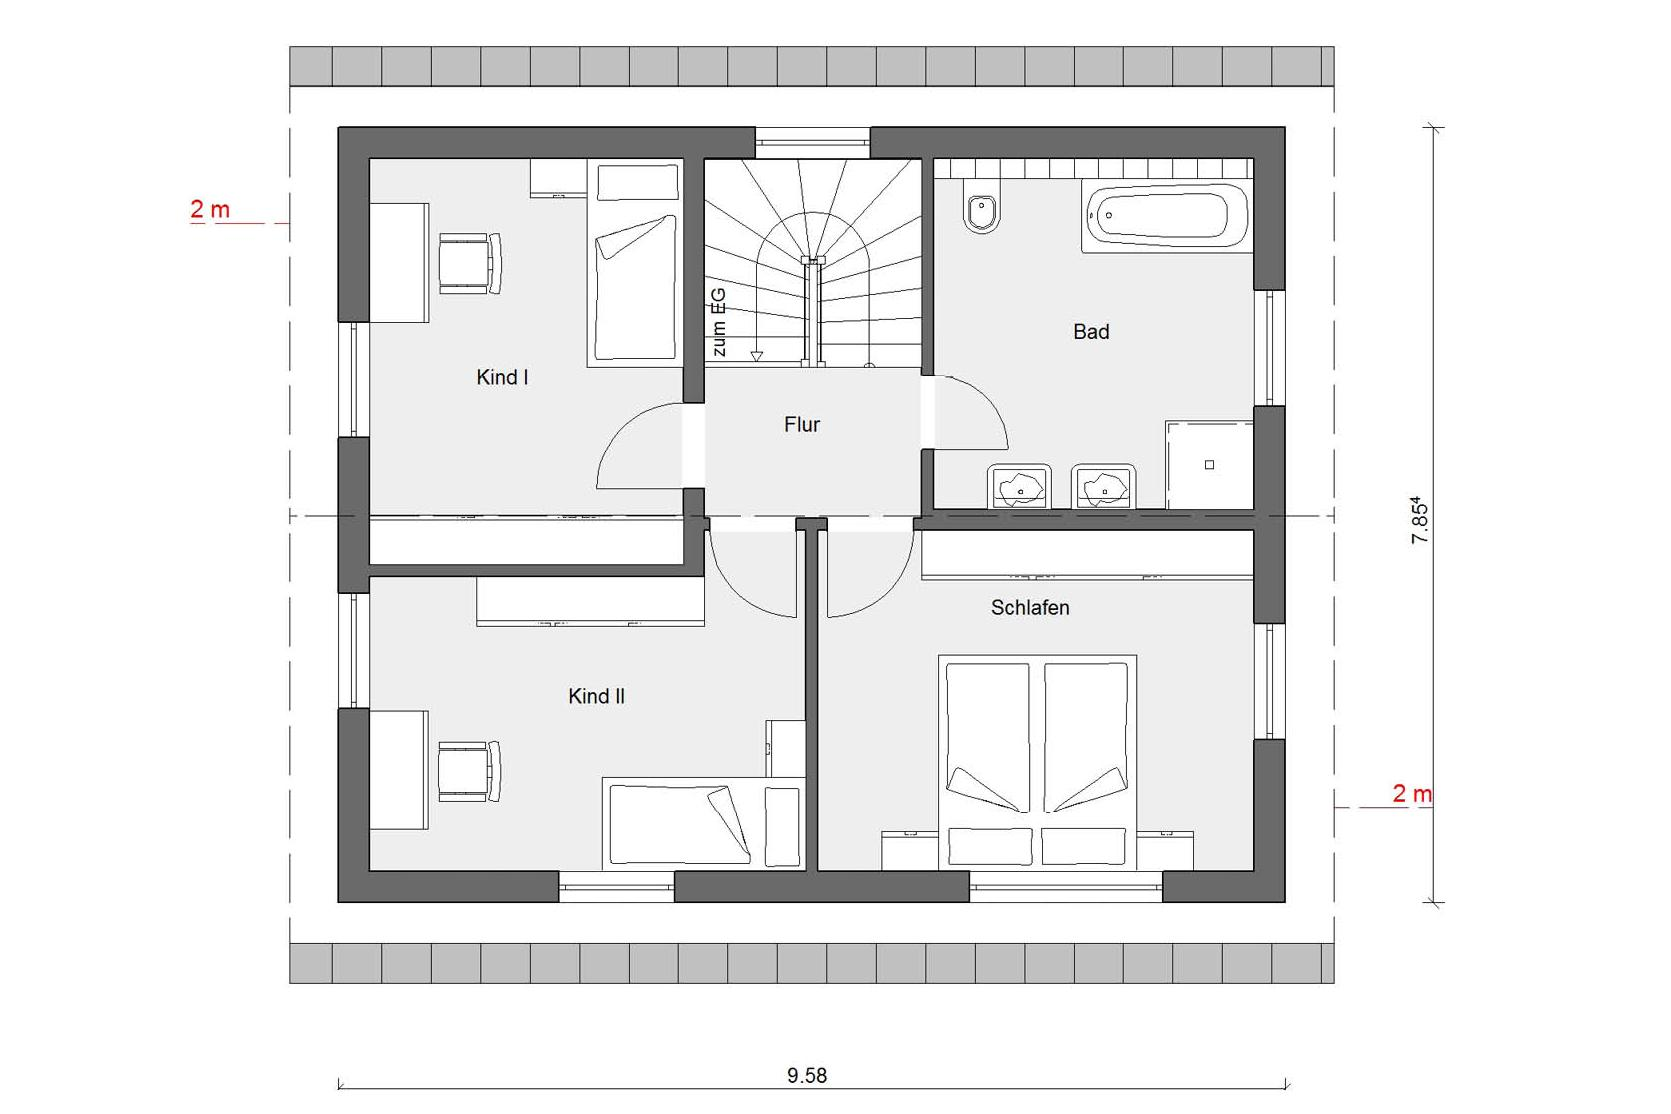 Attic floor plan E 15-123.4 compact family house